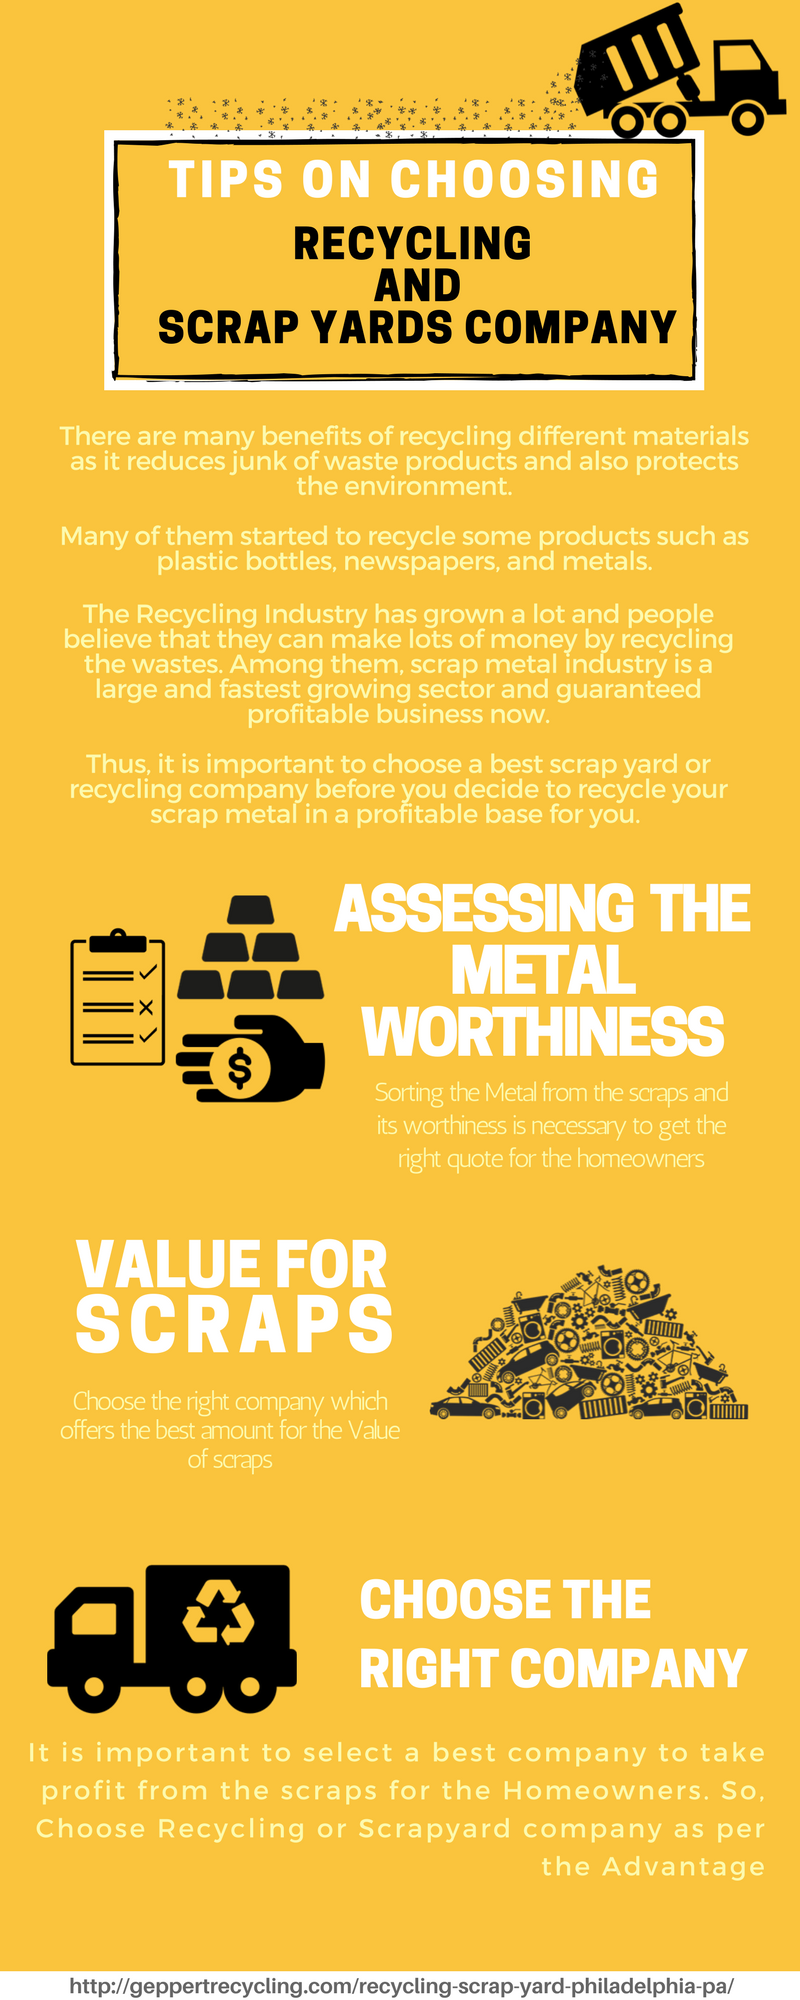 Tips on Choosing Recycling and Scrap Yard Company